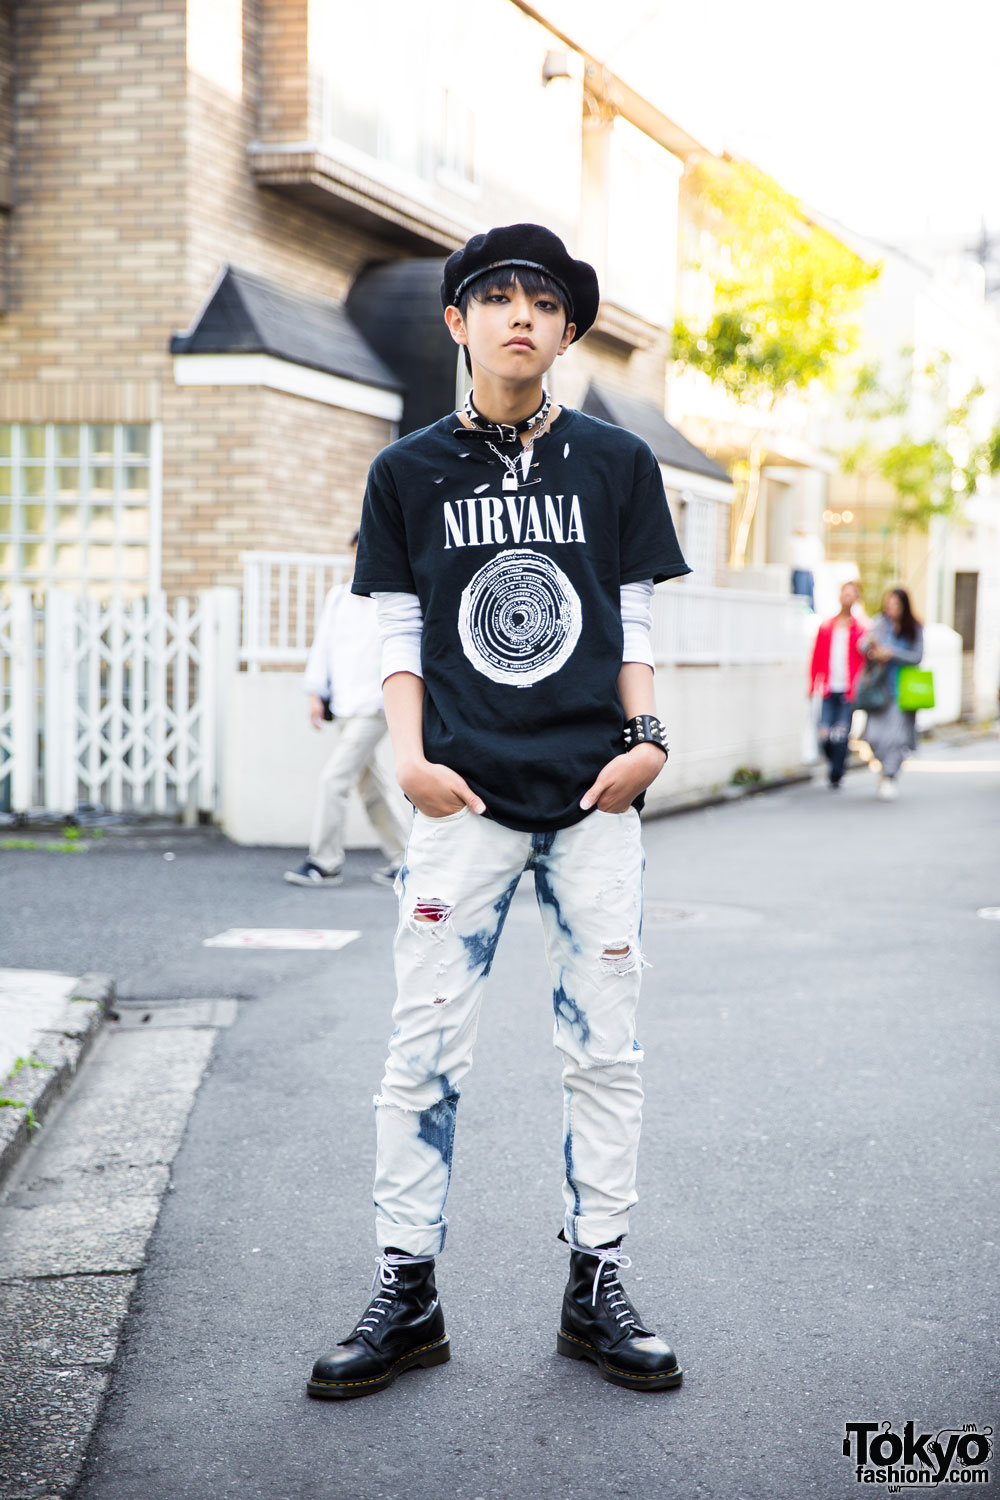 harajuku guy in punk inspired street style w nirvana dr martens. Black Bedroom Furniture Sets. Home Design Ideas